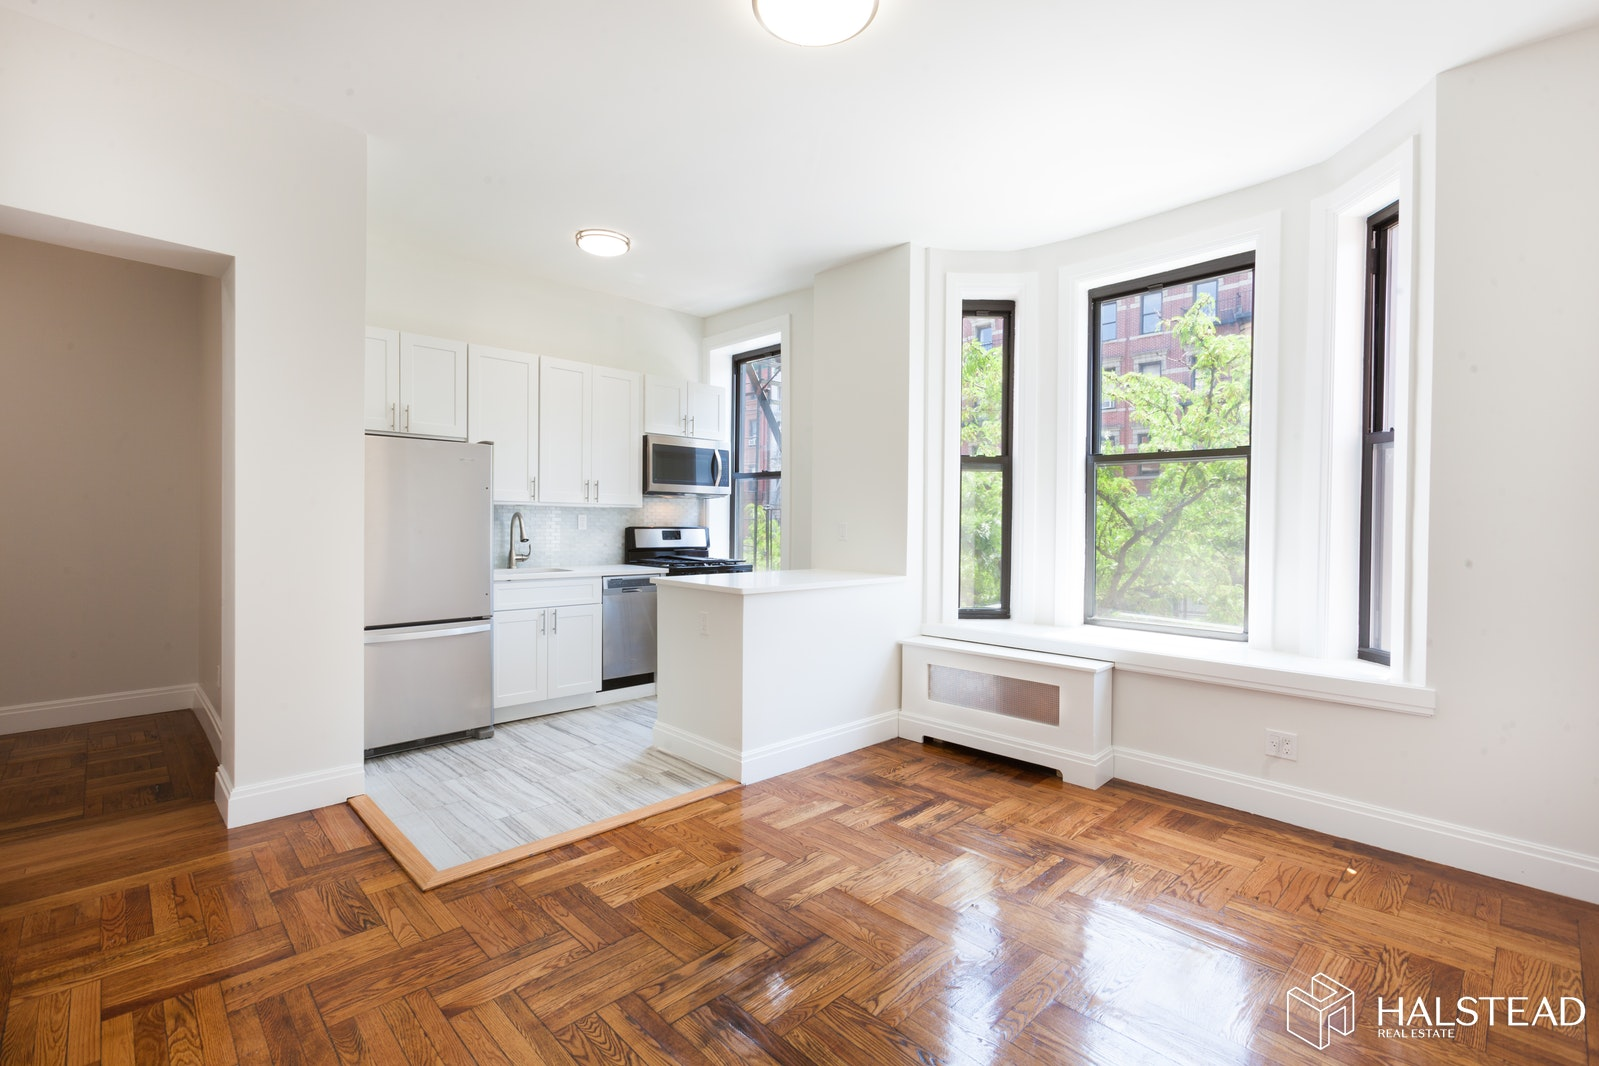 17 West 125th Street 3f, Upper Manhattan, NYC, 10027, $2,450, Rented Property, Halstead Real Estate, Photo 3